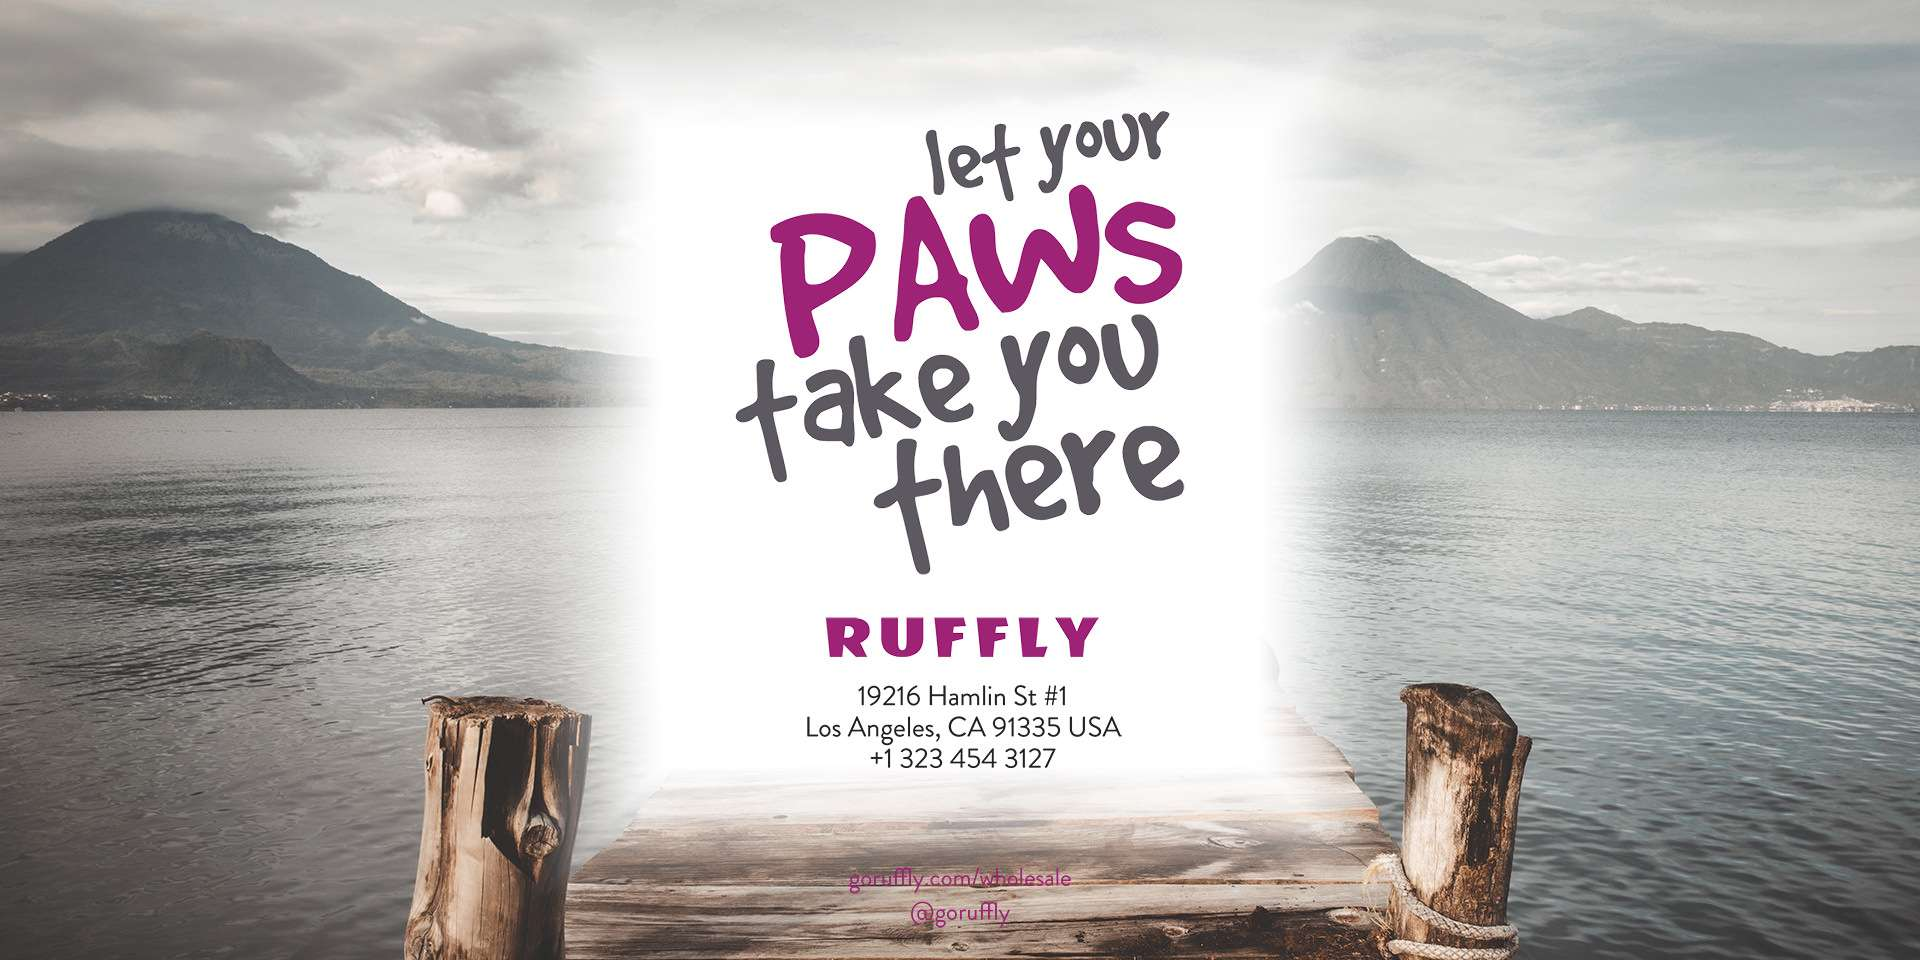 The back cover of RUFFLY's lookbook catalogue of dog gear features the contact information and Let Your Paws Take You There motto